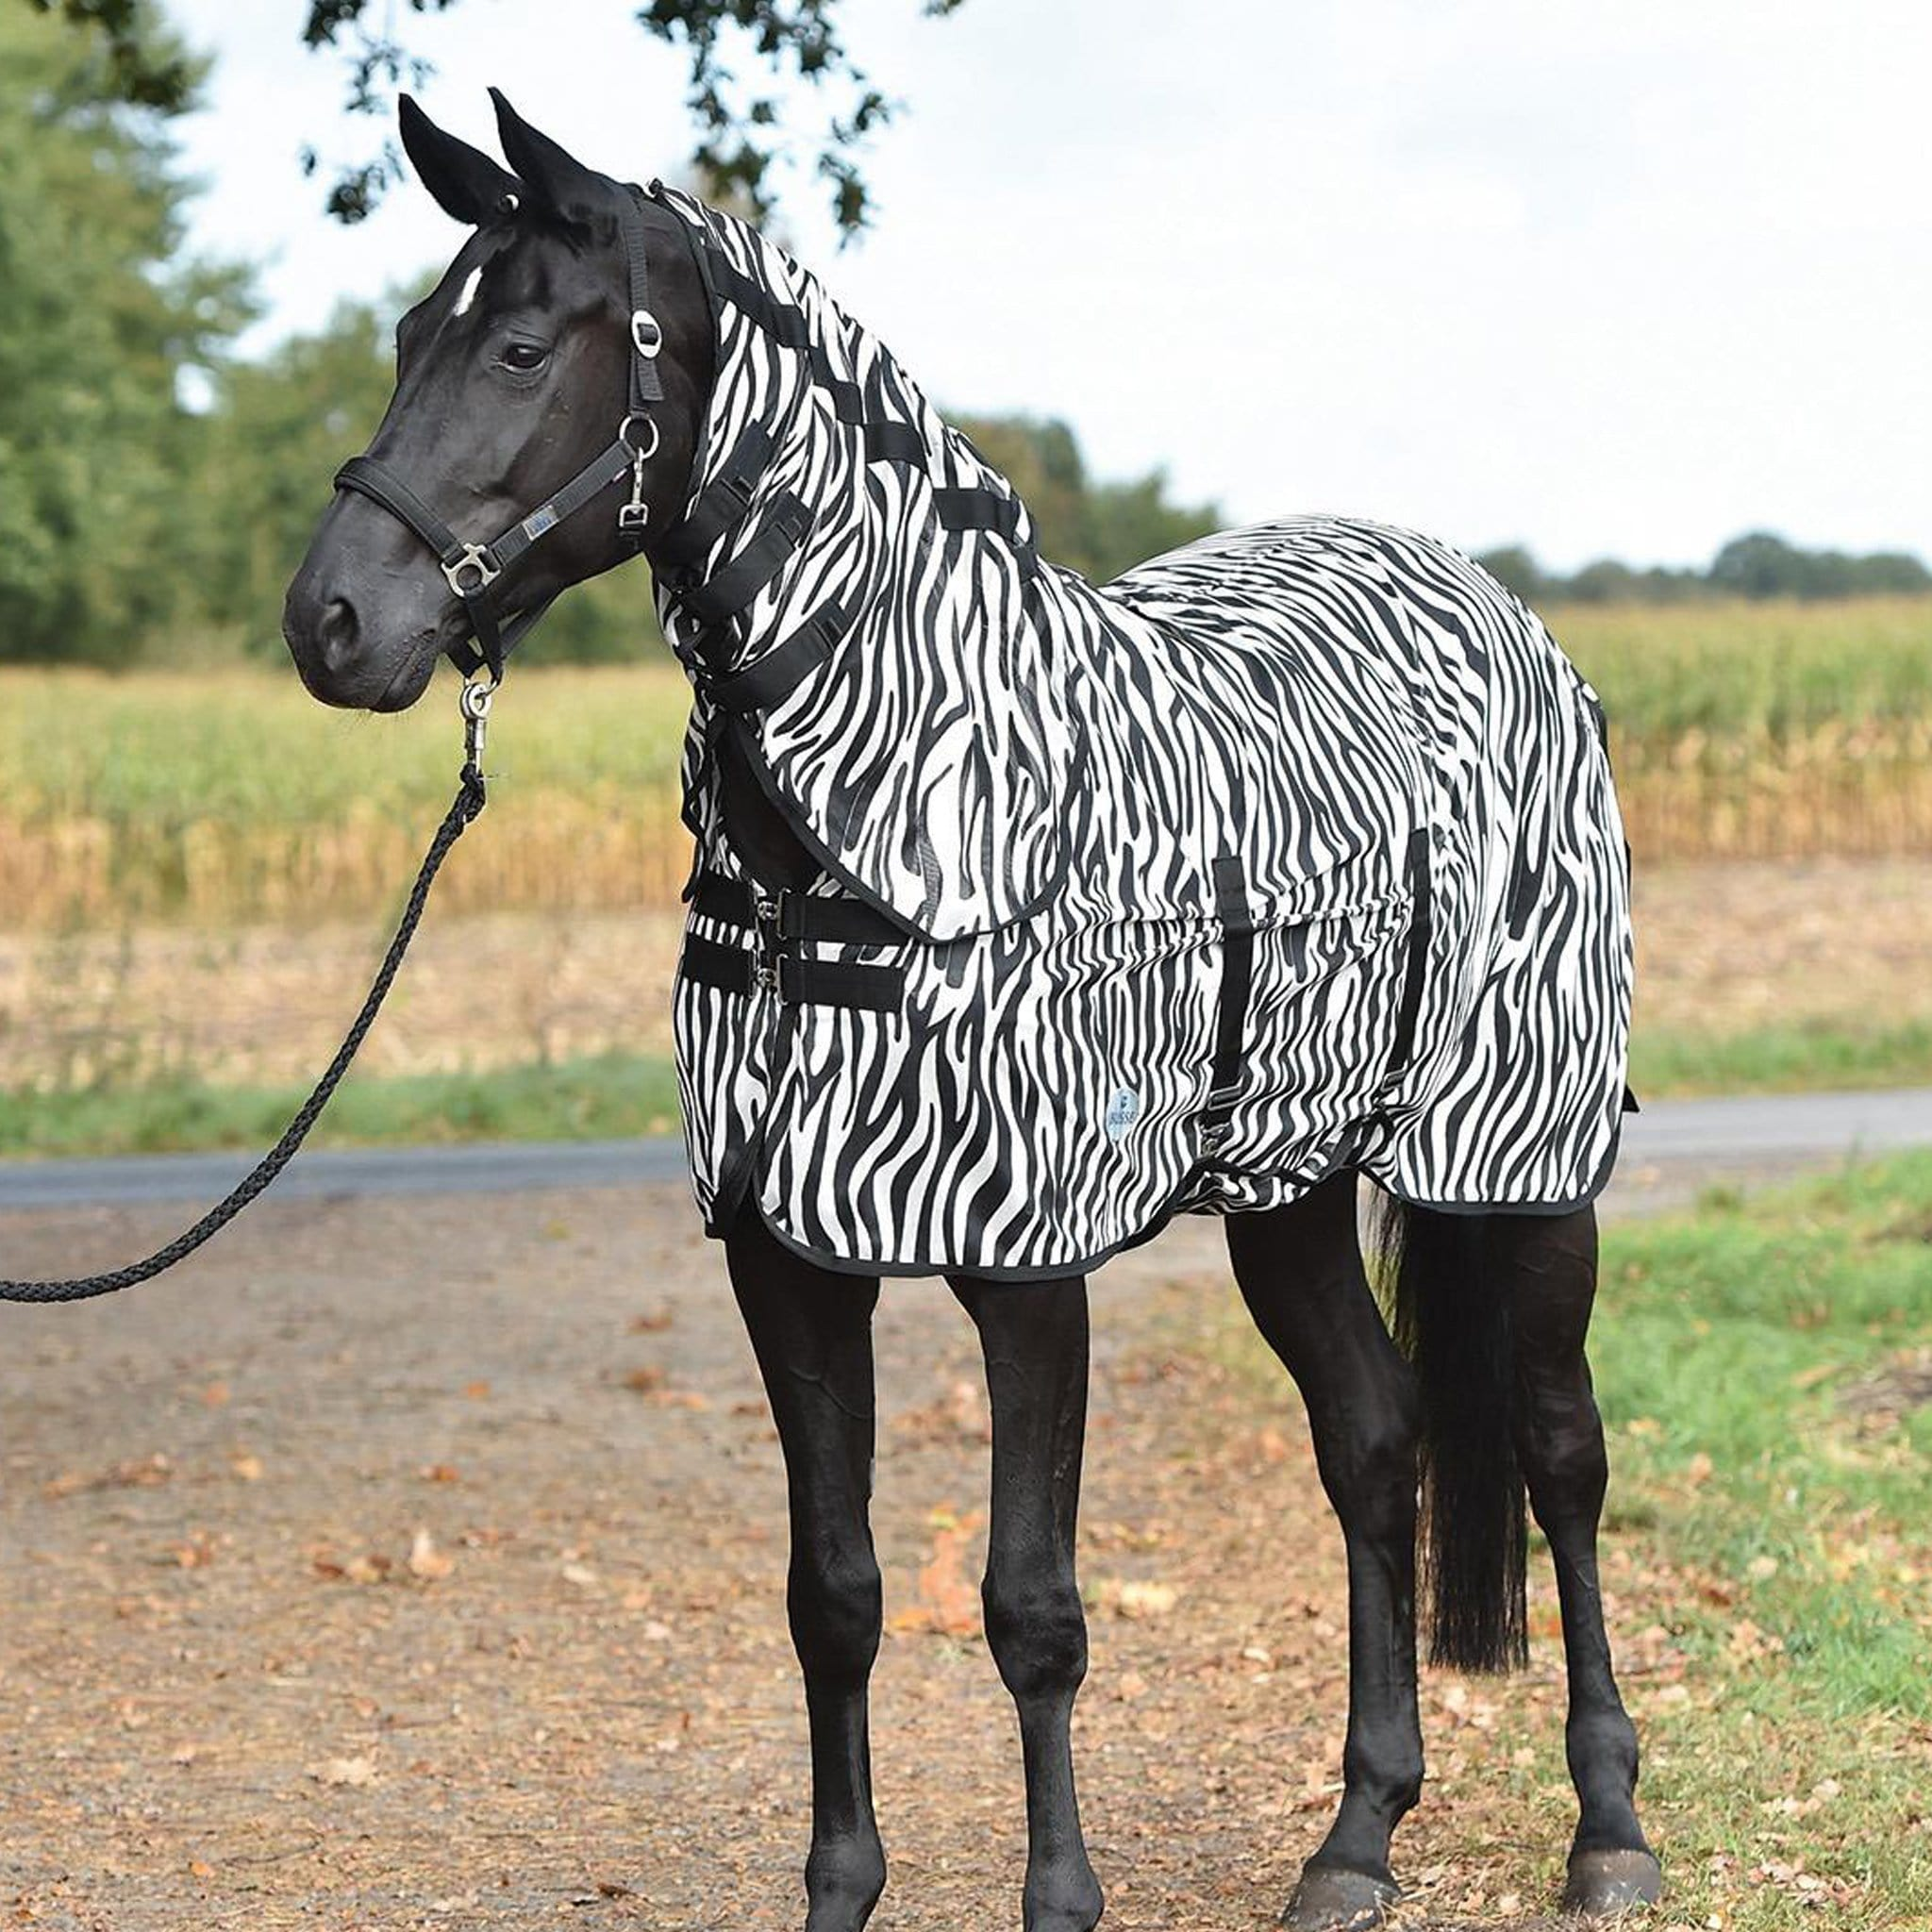 Busse Paddock Comfort Zebra Fly Sheet With Detachable Neck Cover 603601 With Neck Cover From Front